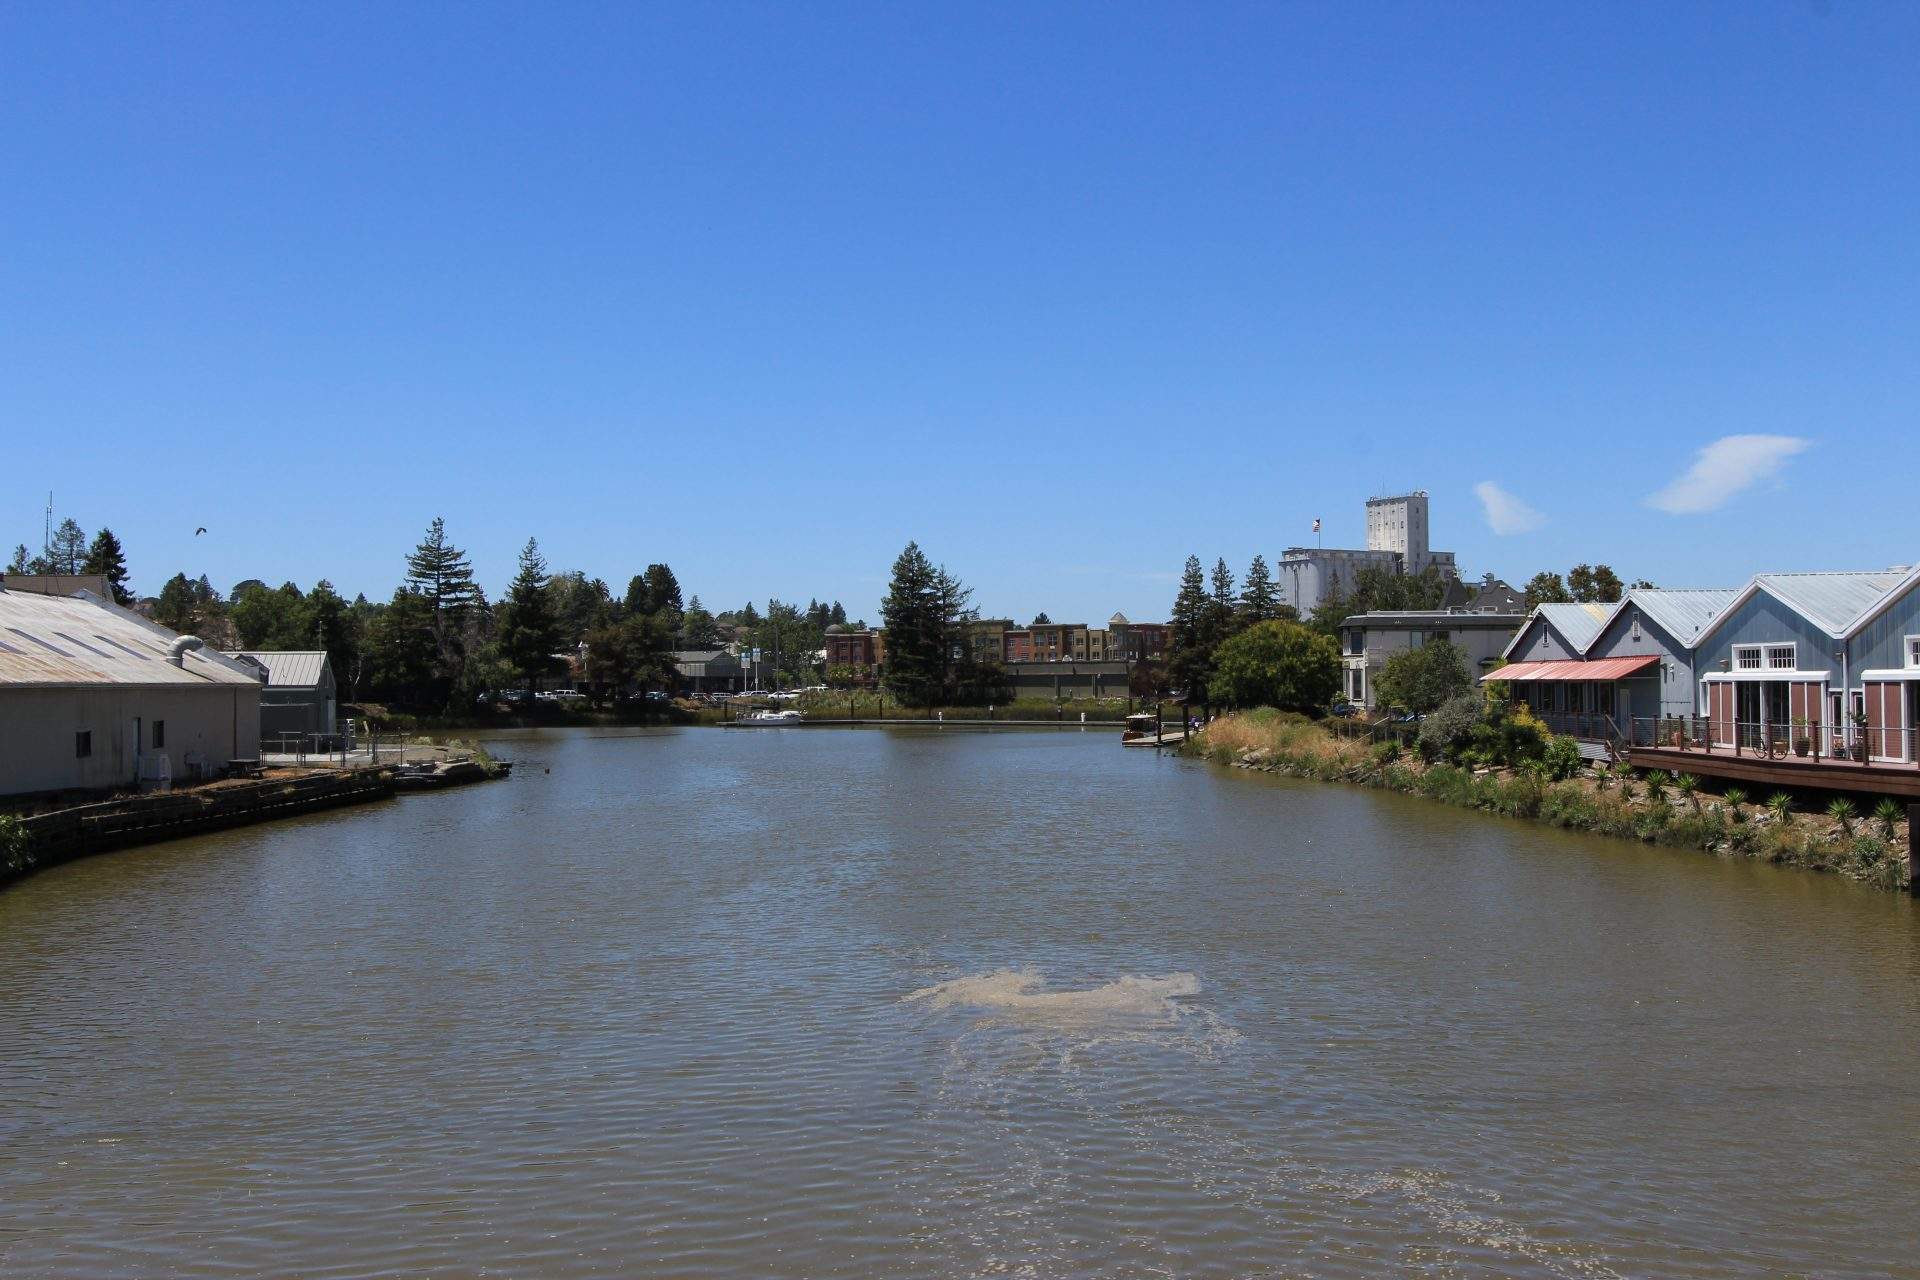 View of river, a wide expanse of water with buildings on both sides